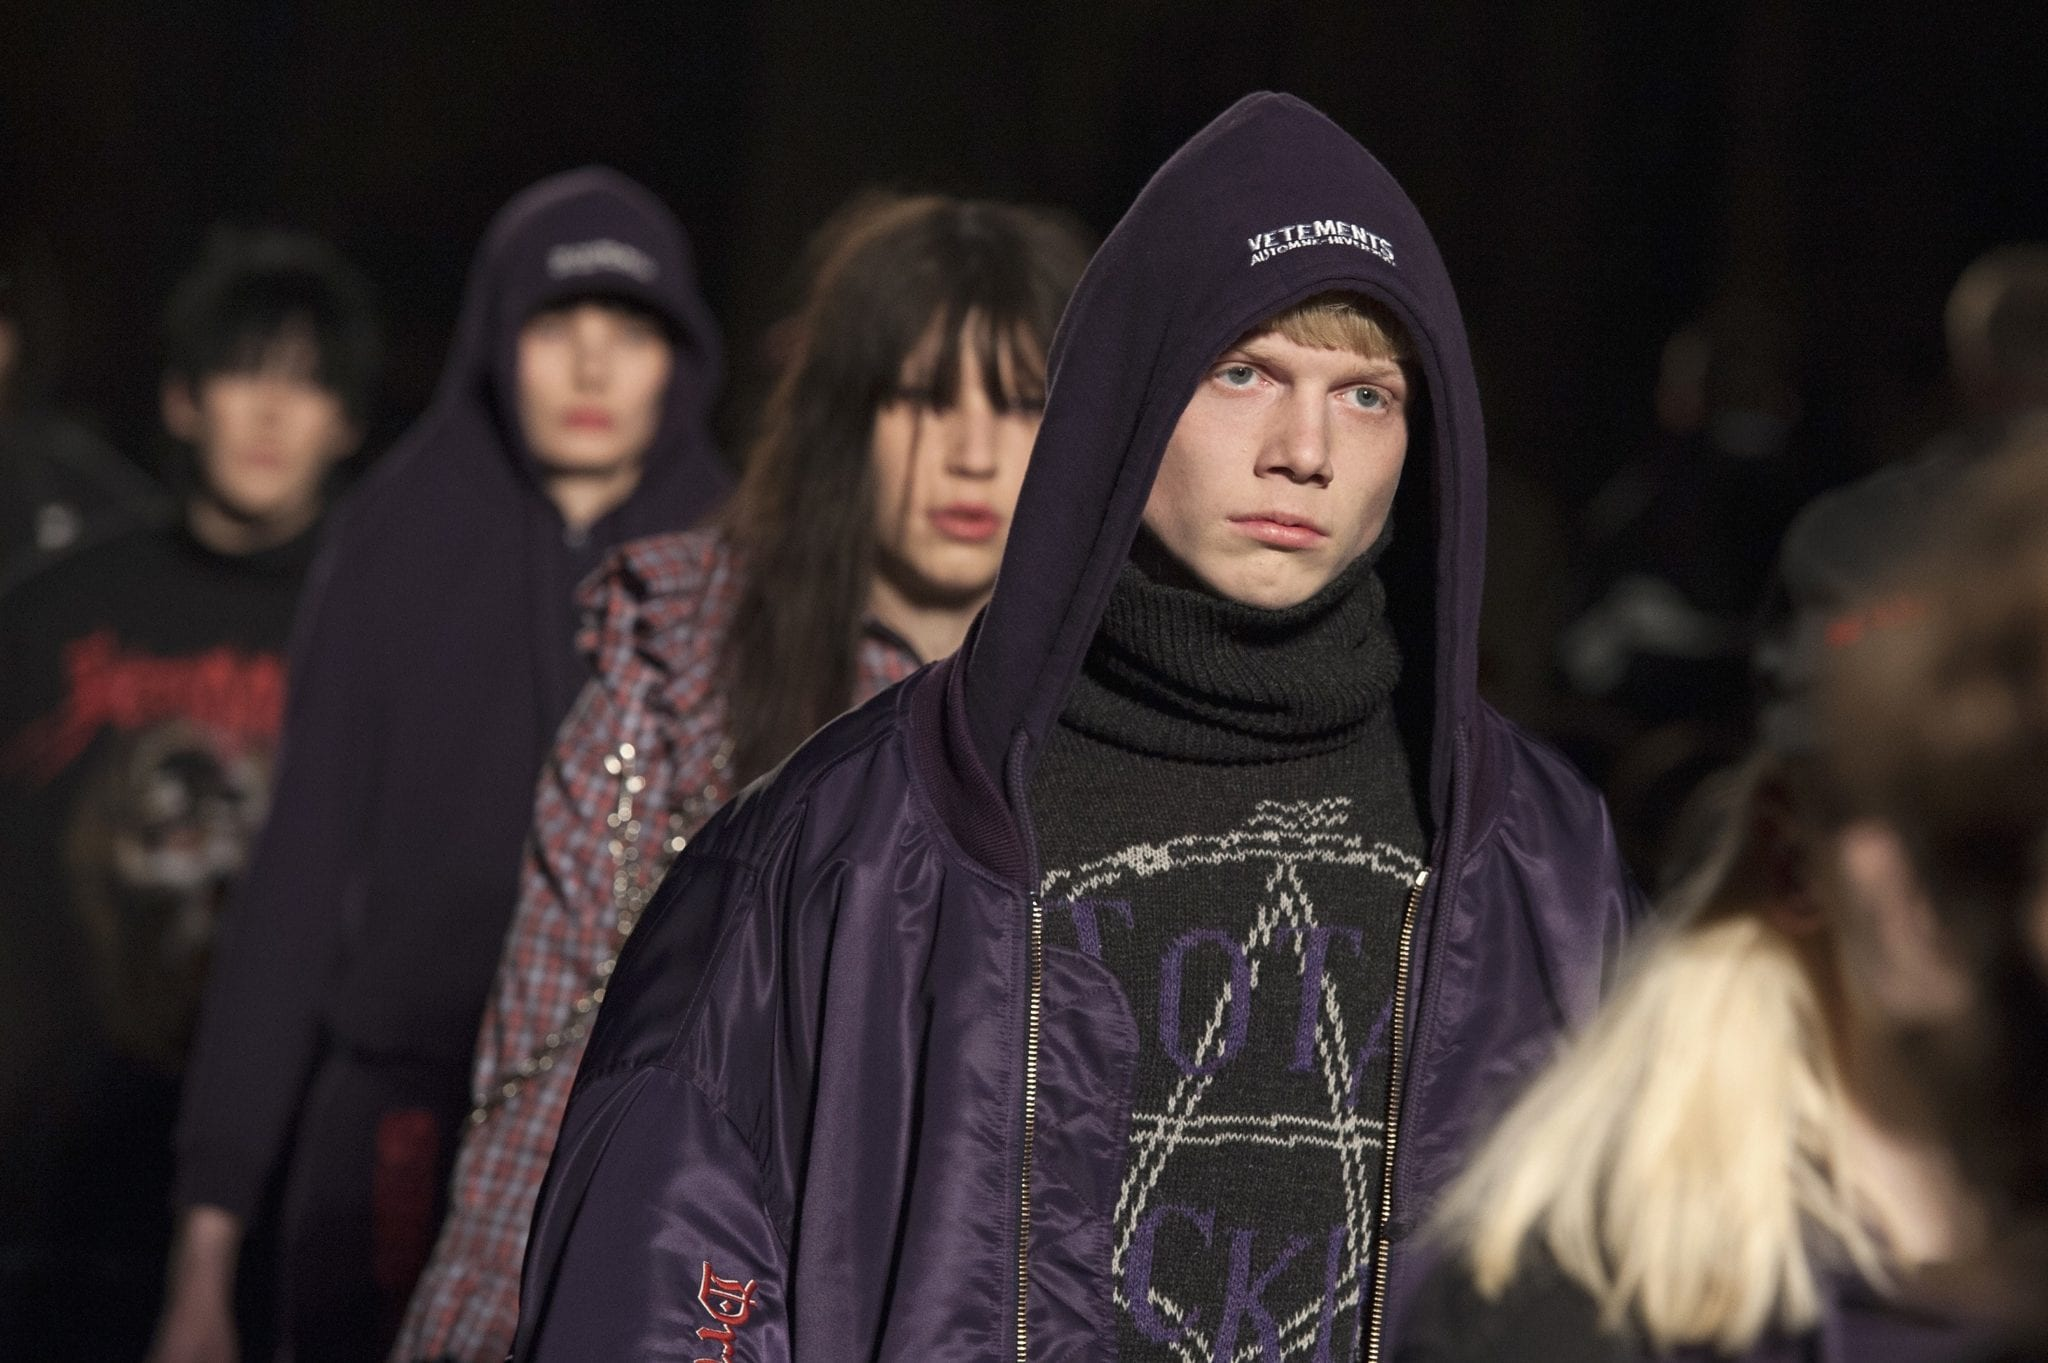 vetements-collabs by Kay-Paris Fernandes